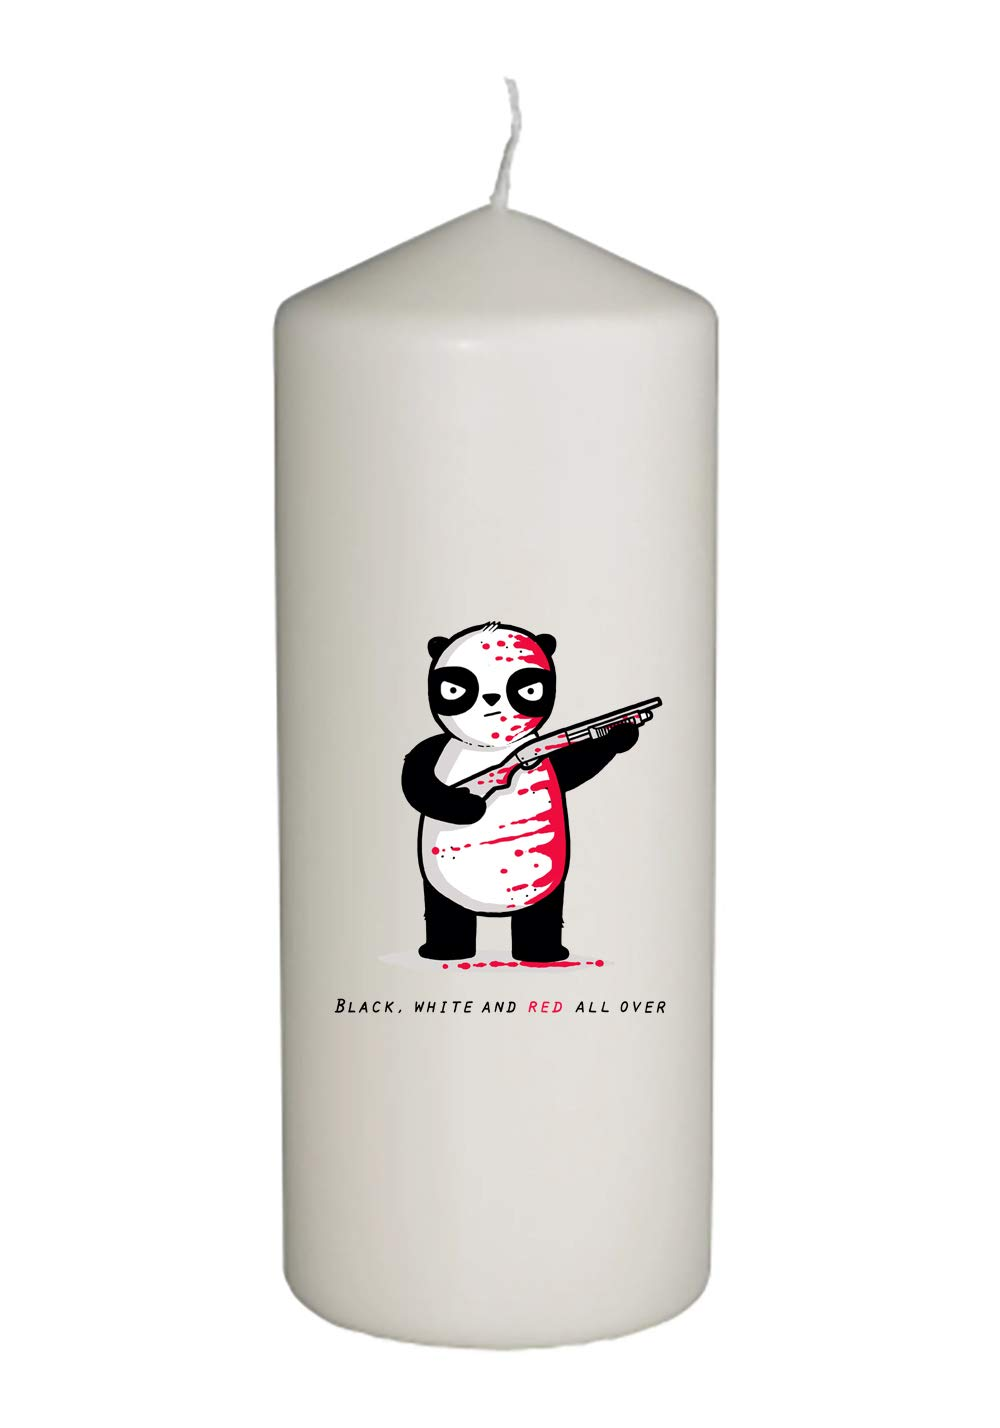 Hat Shark Randy Otter Black, White, and Red All Over Panda with Shotgun Thick White in Full Color Unity Candle - Wedding, Baptism, Funeral, Special Event Decoration (6 inches Tall)